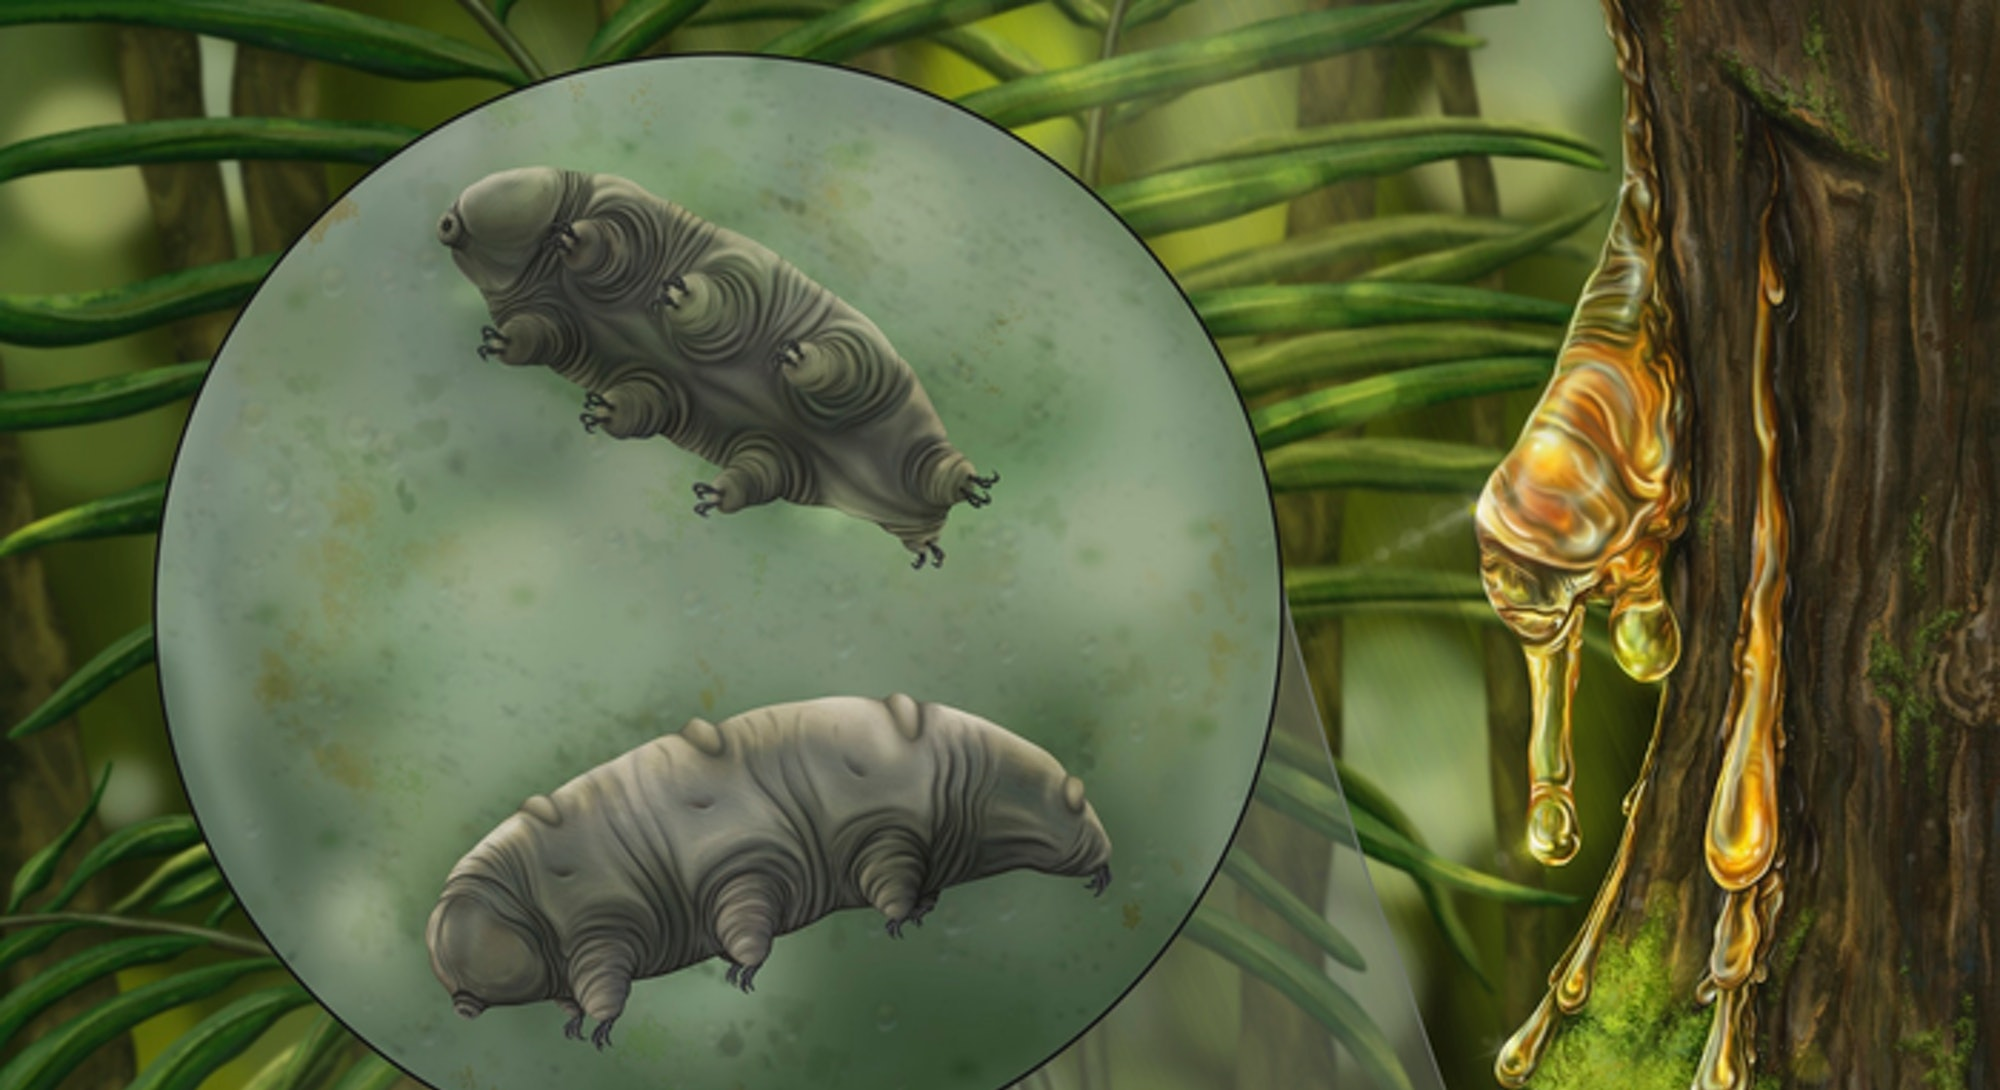 An artistic depiction of tardigrades